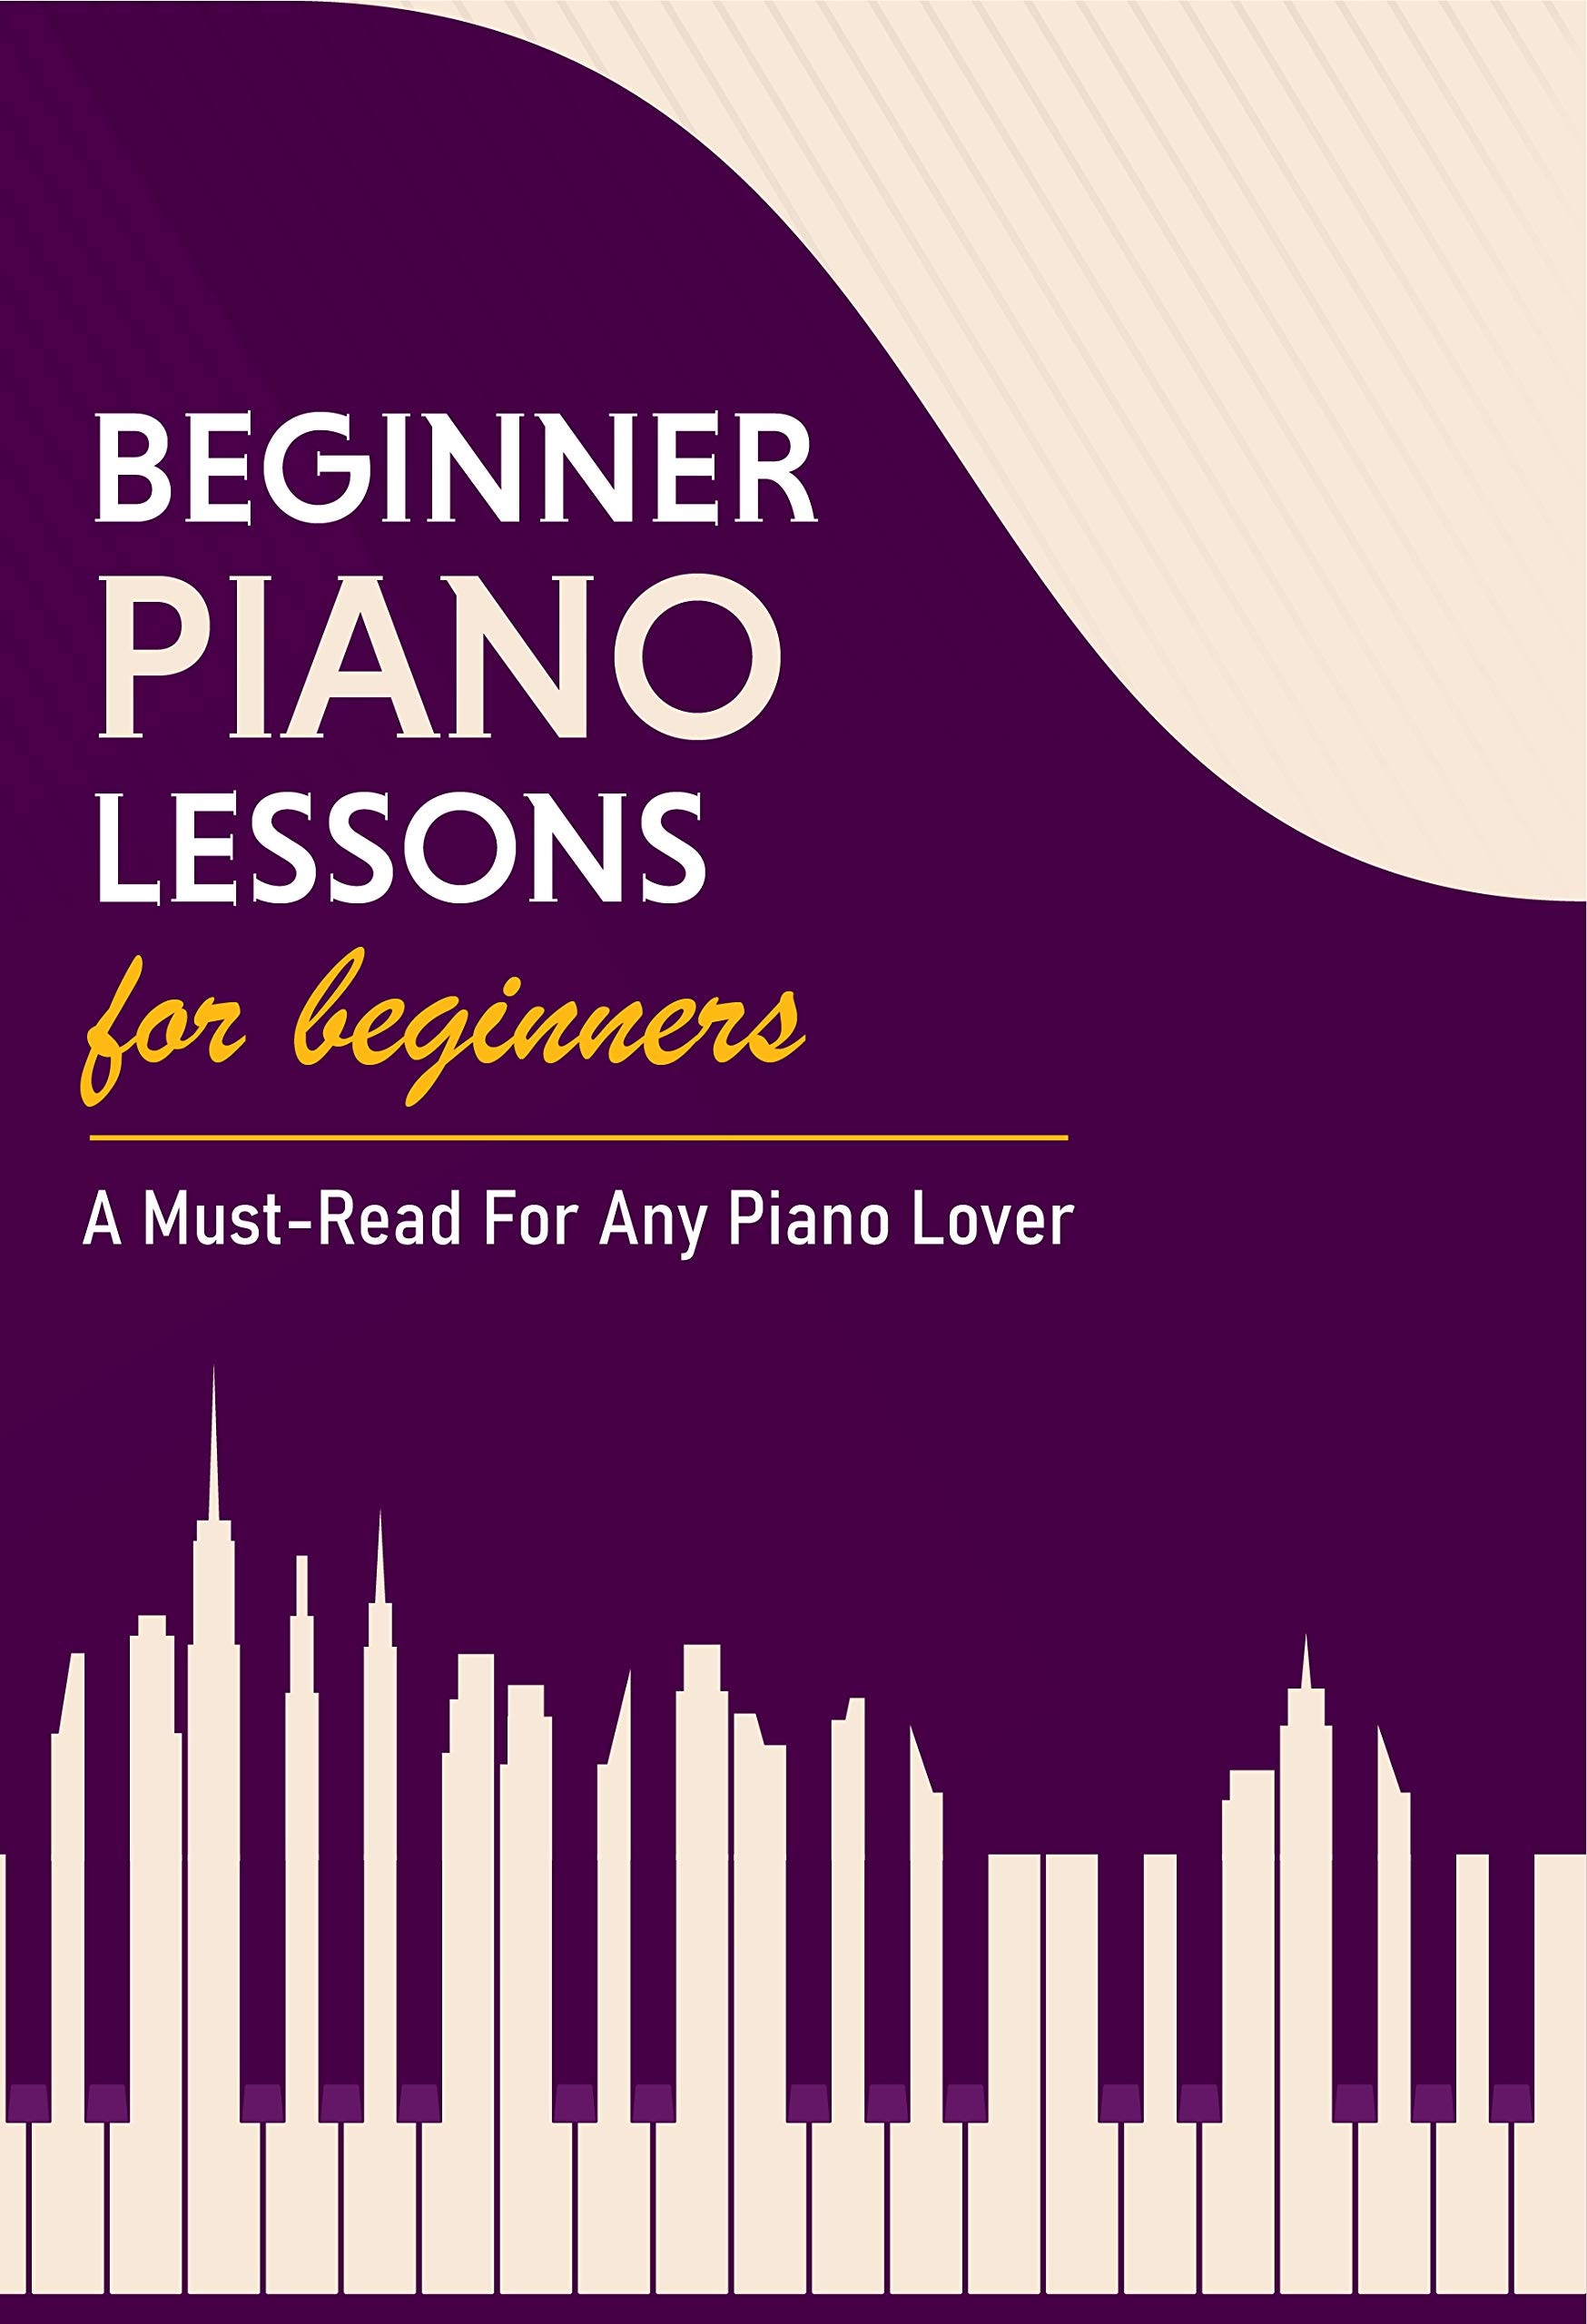 Beginner Piano Lessons For Beginners: A Must-Read For Any Piano Lover: Basic Music Theory Book